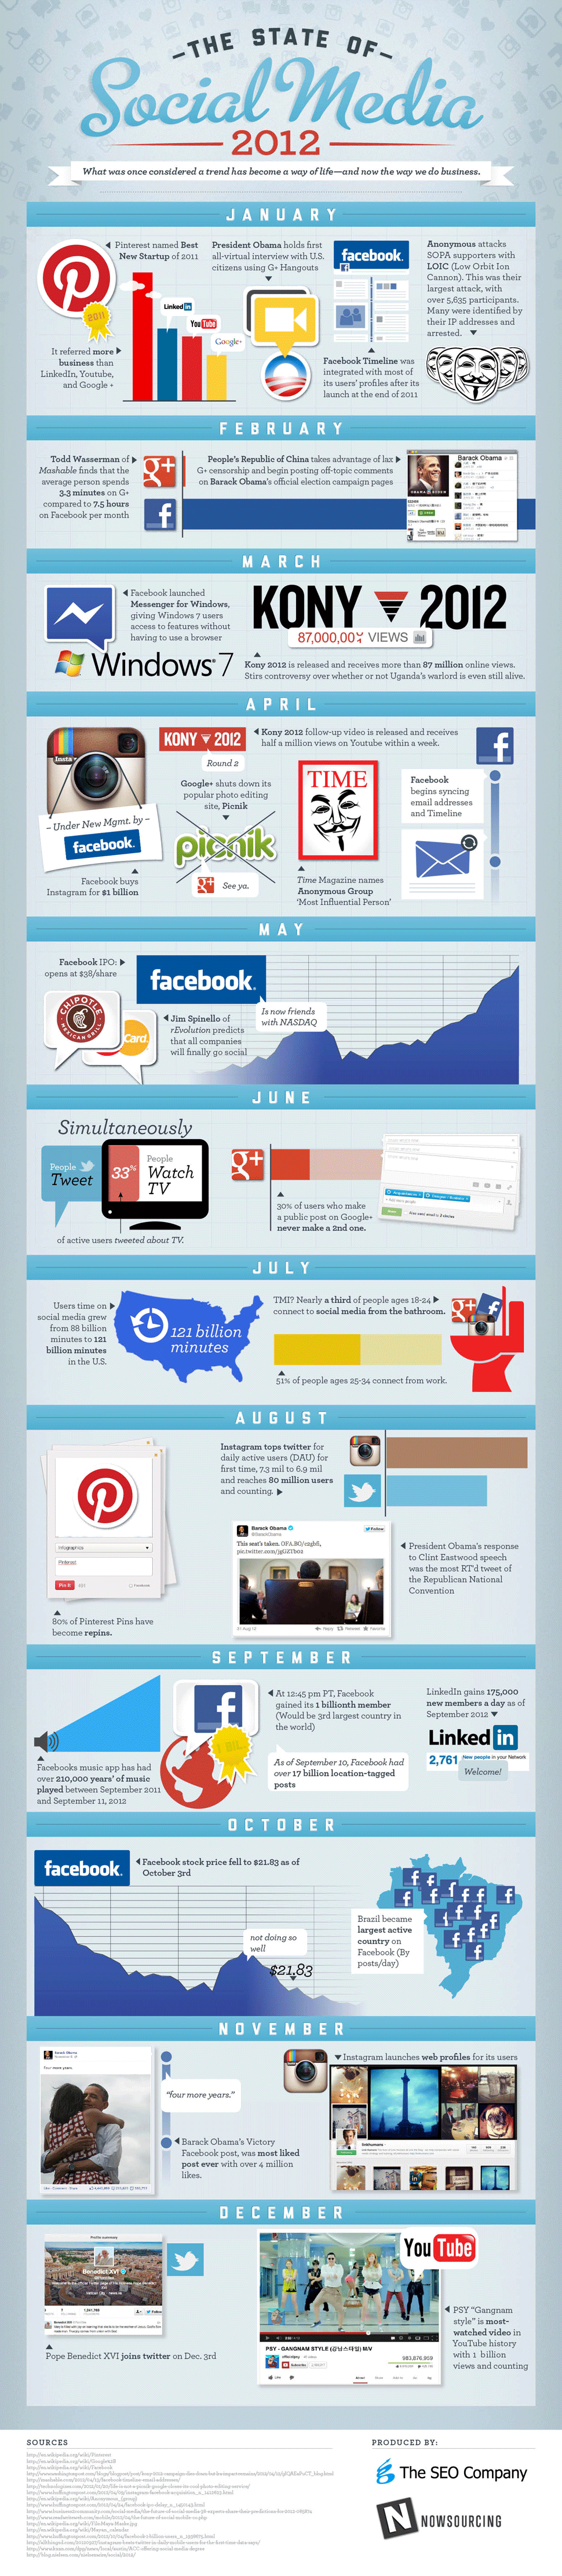 The State of Social Media 2012 by The SEO Company